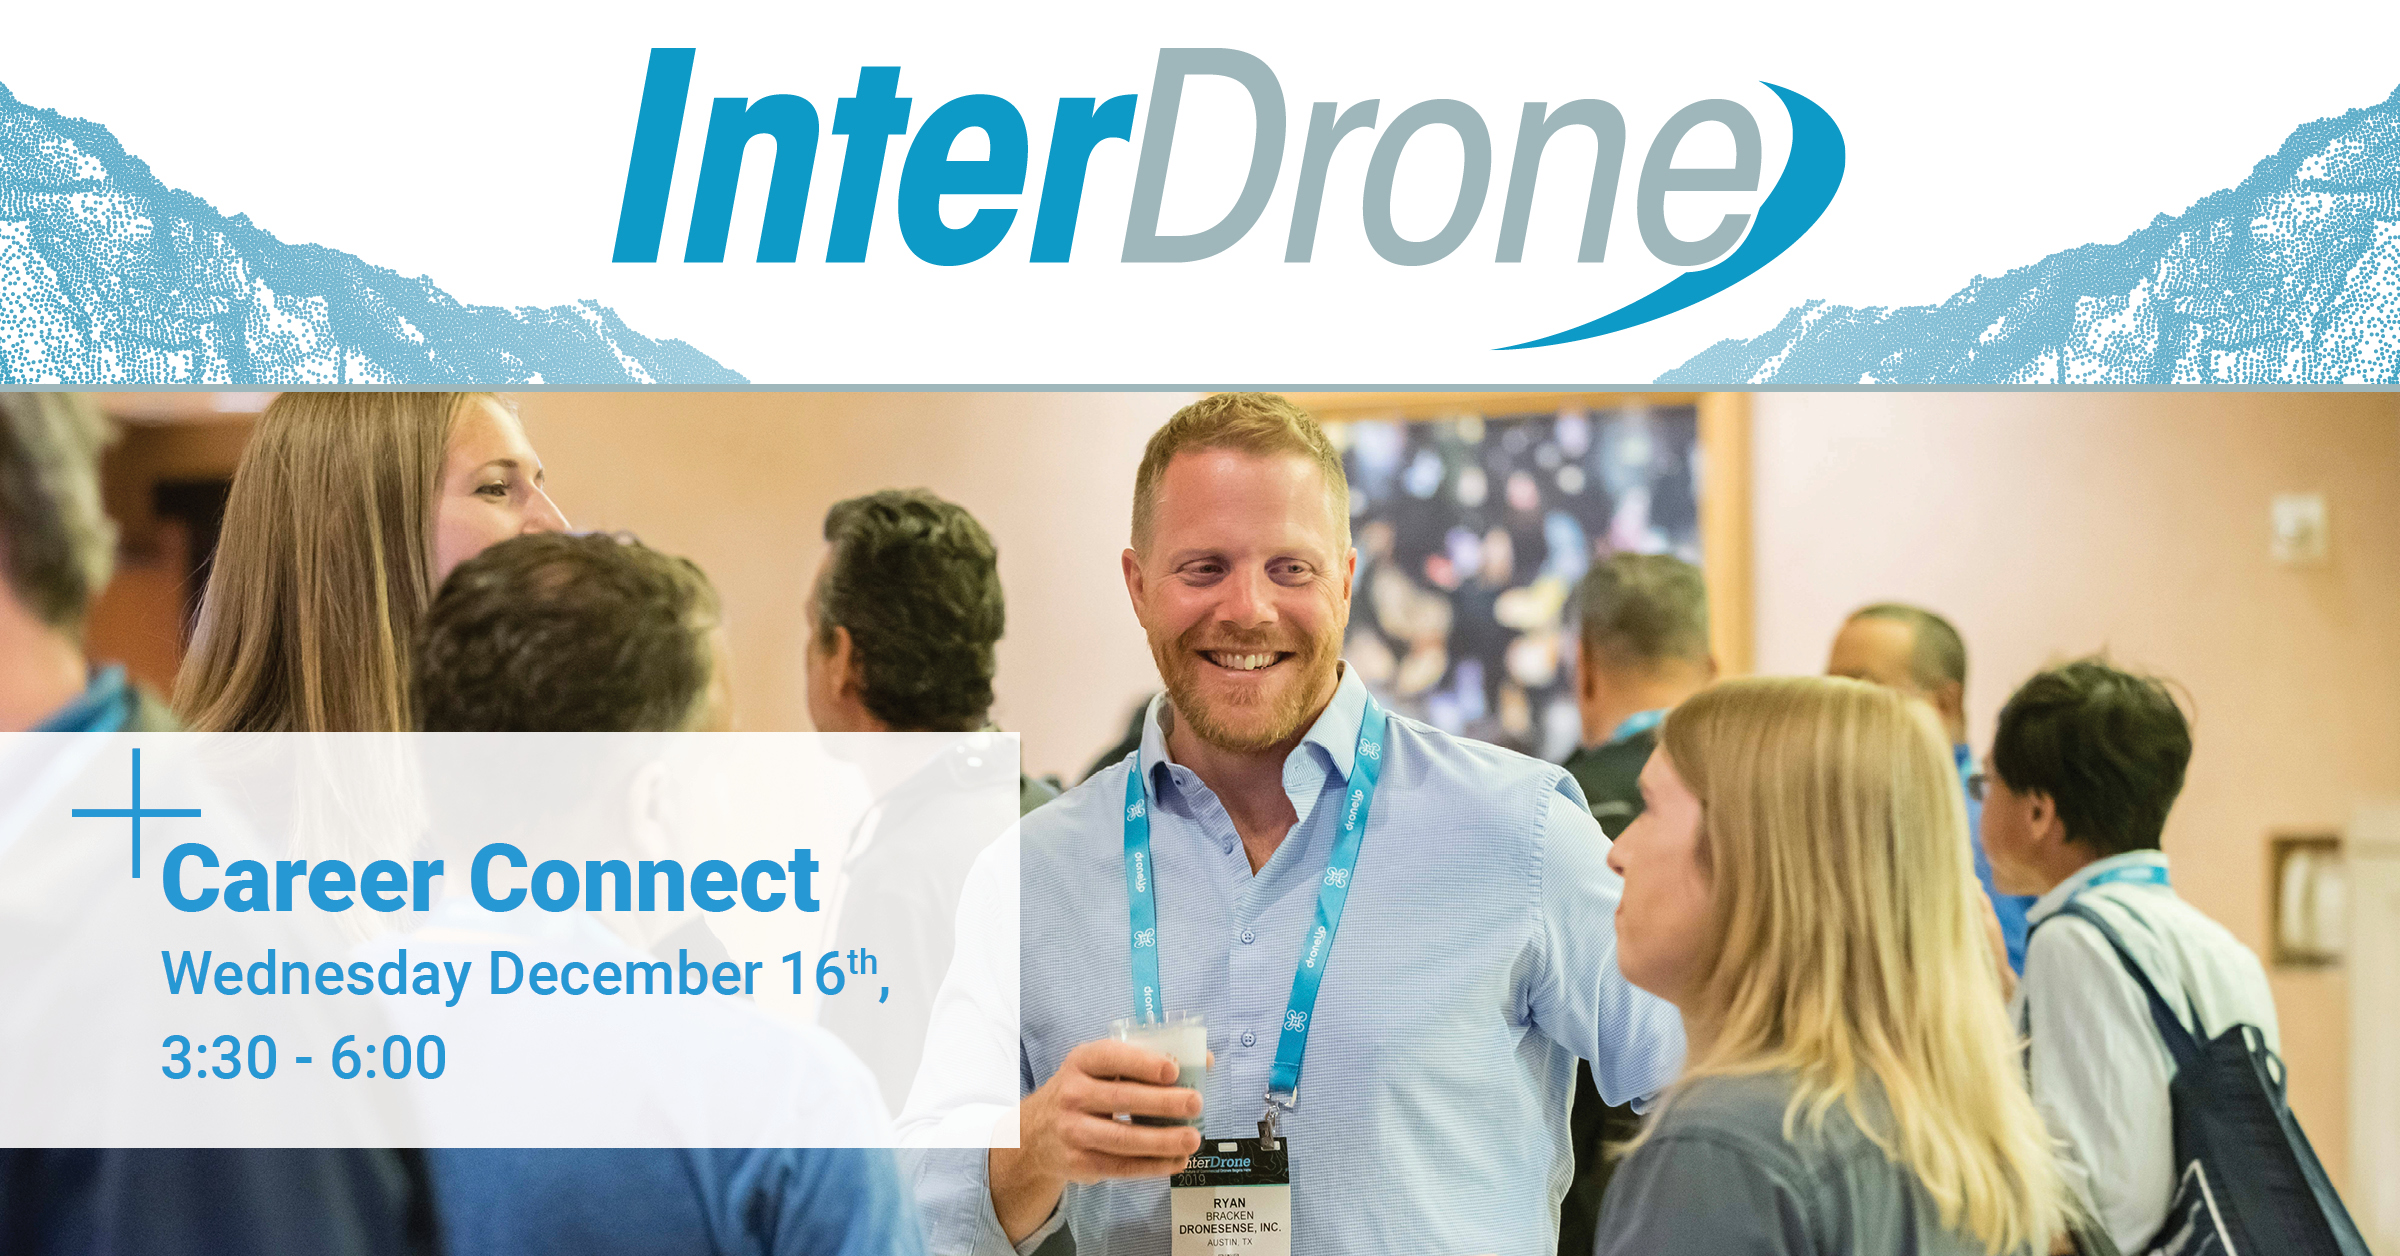 InterDrone Career Connect 2020